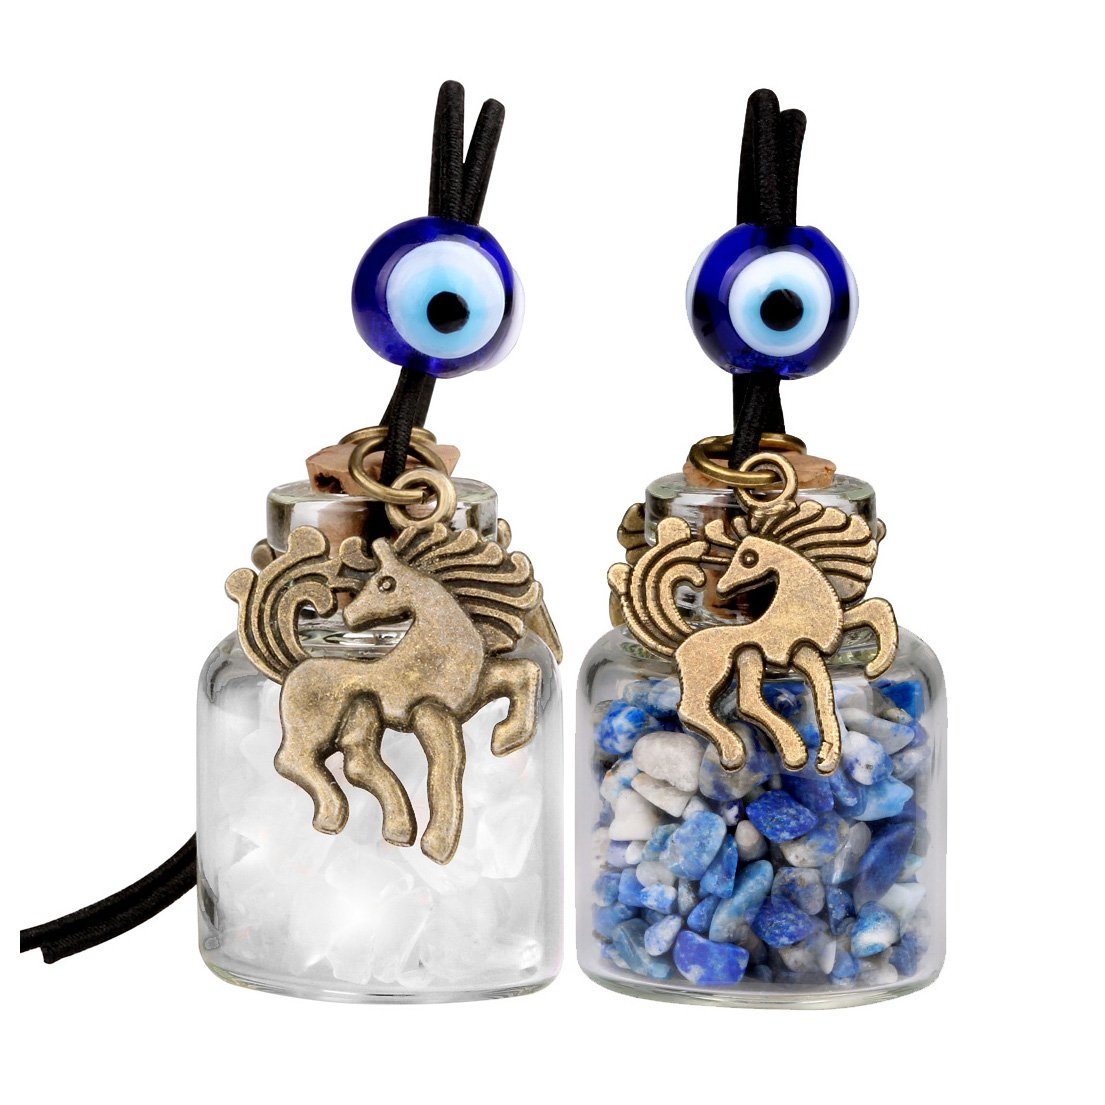 Lapis Lazuli Natural Gemstone Good Luck and Protection Powers Talisman Car Charms Amulets